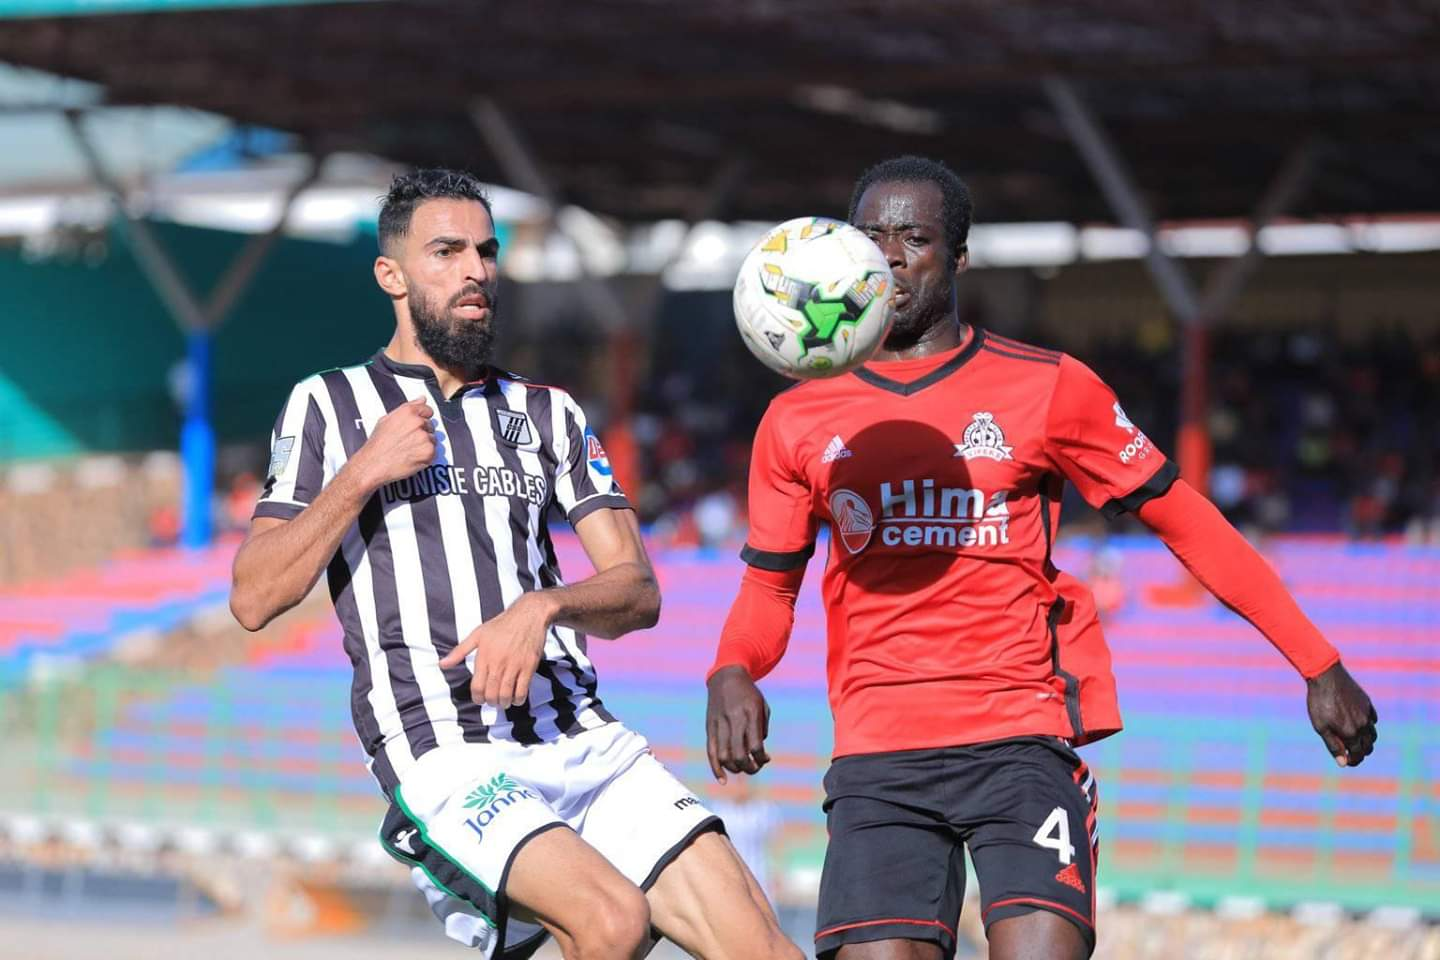 Vipers' Livingstone Mulondo in action against Sfaxien on Saturday (Agency Photo)